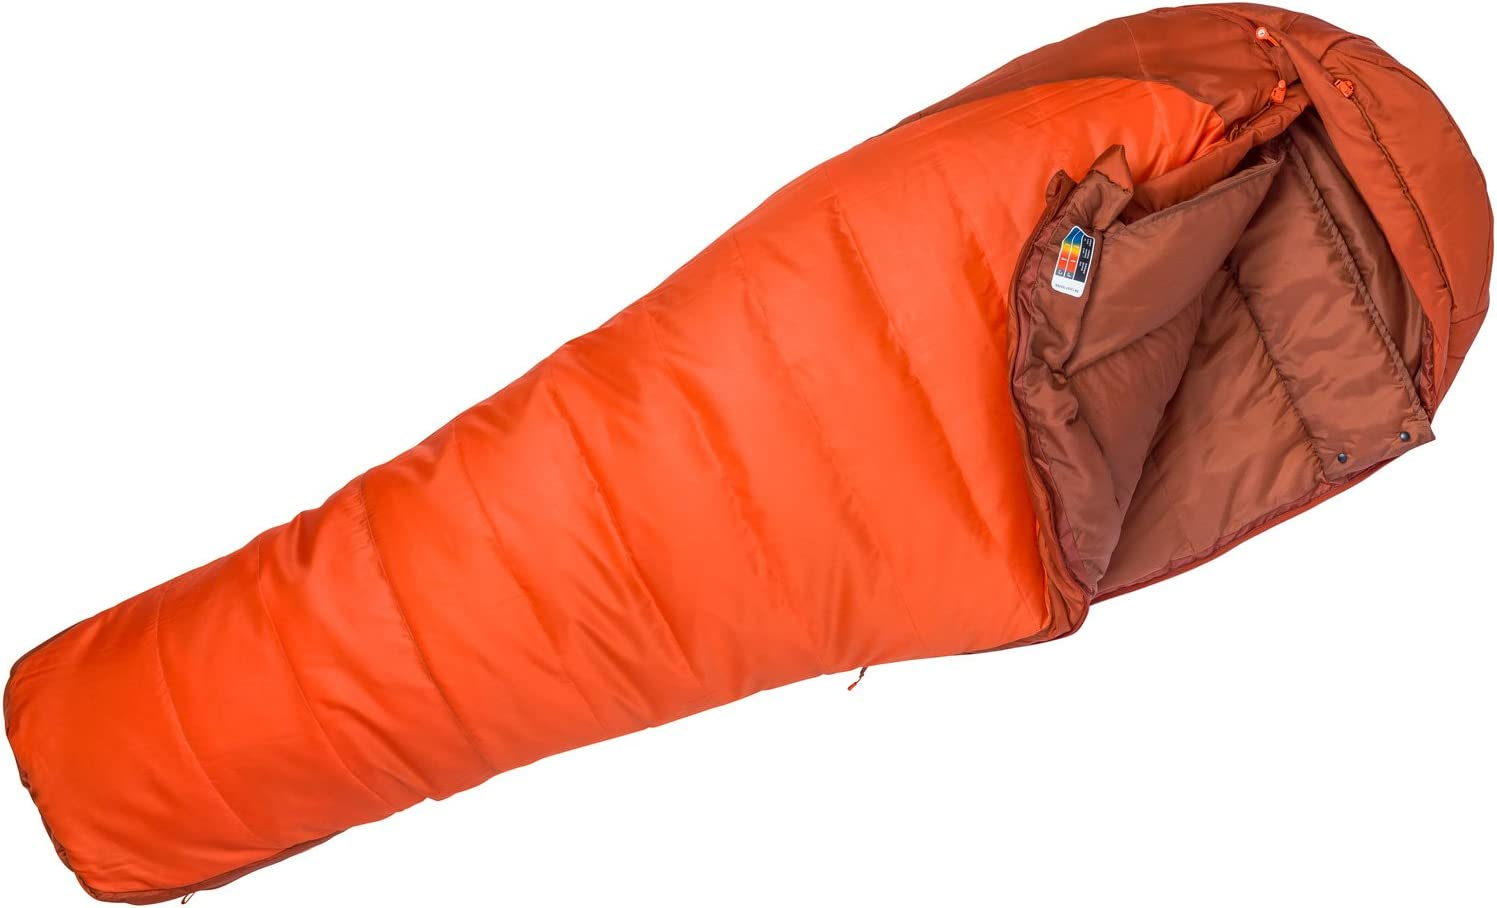 Marmot Trestles 0F Degree Synthetic Sleeping Bag